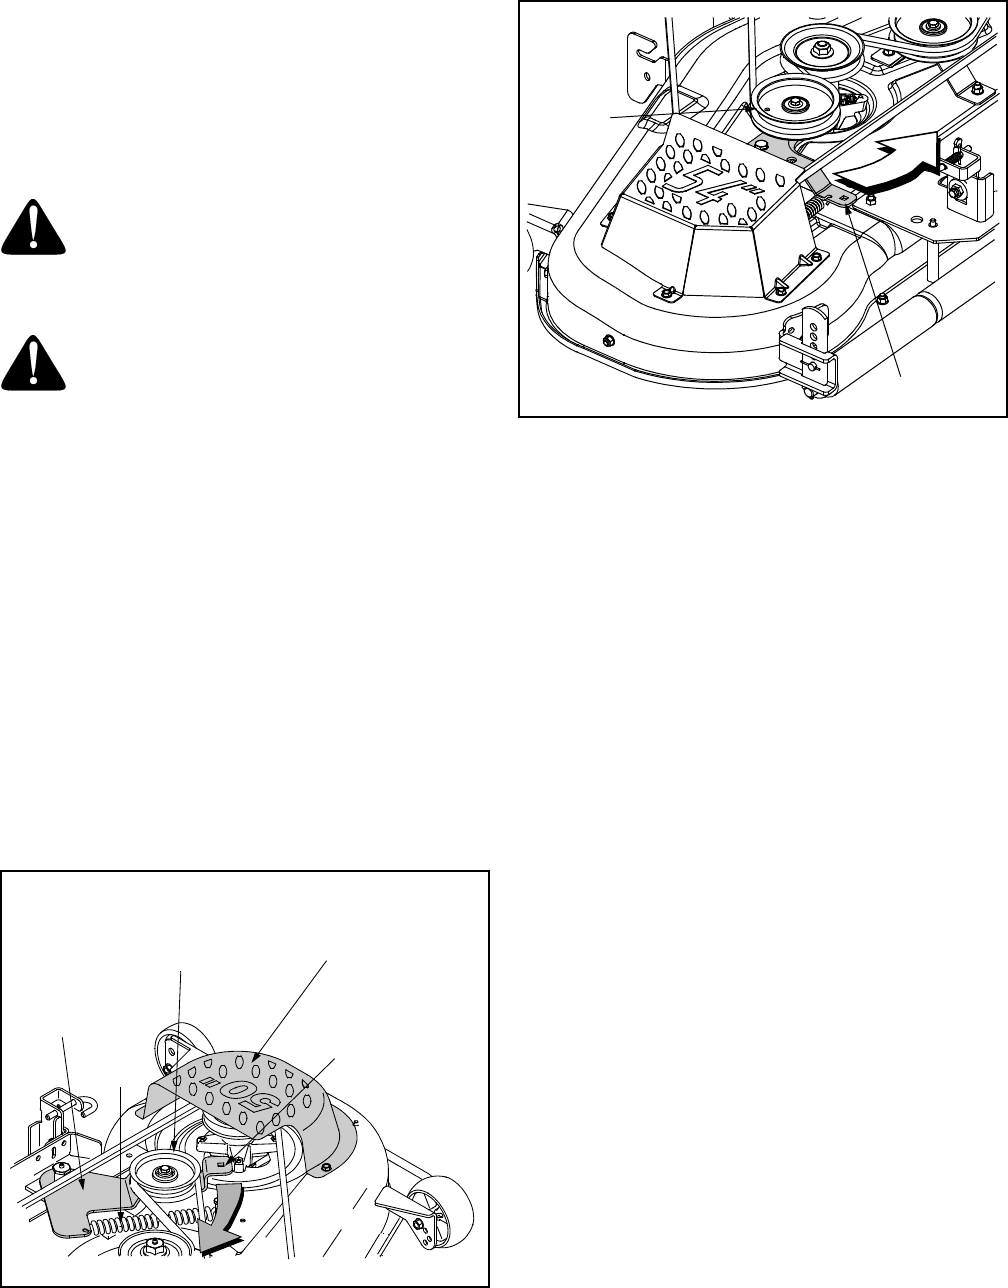 page 28 of toro lawn mower 14ak81rk744 user guide